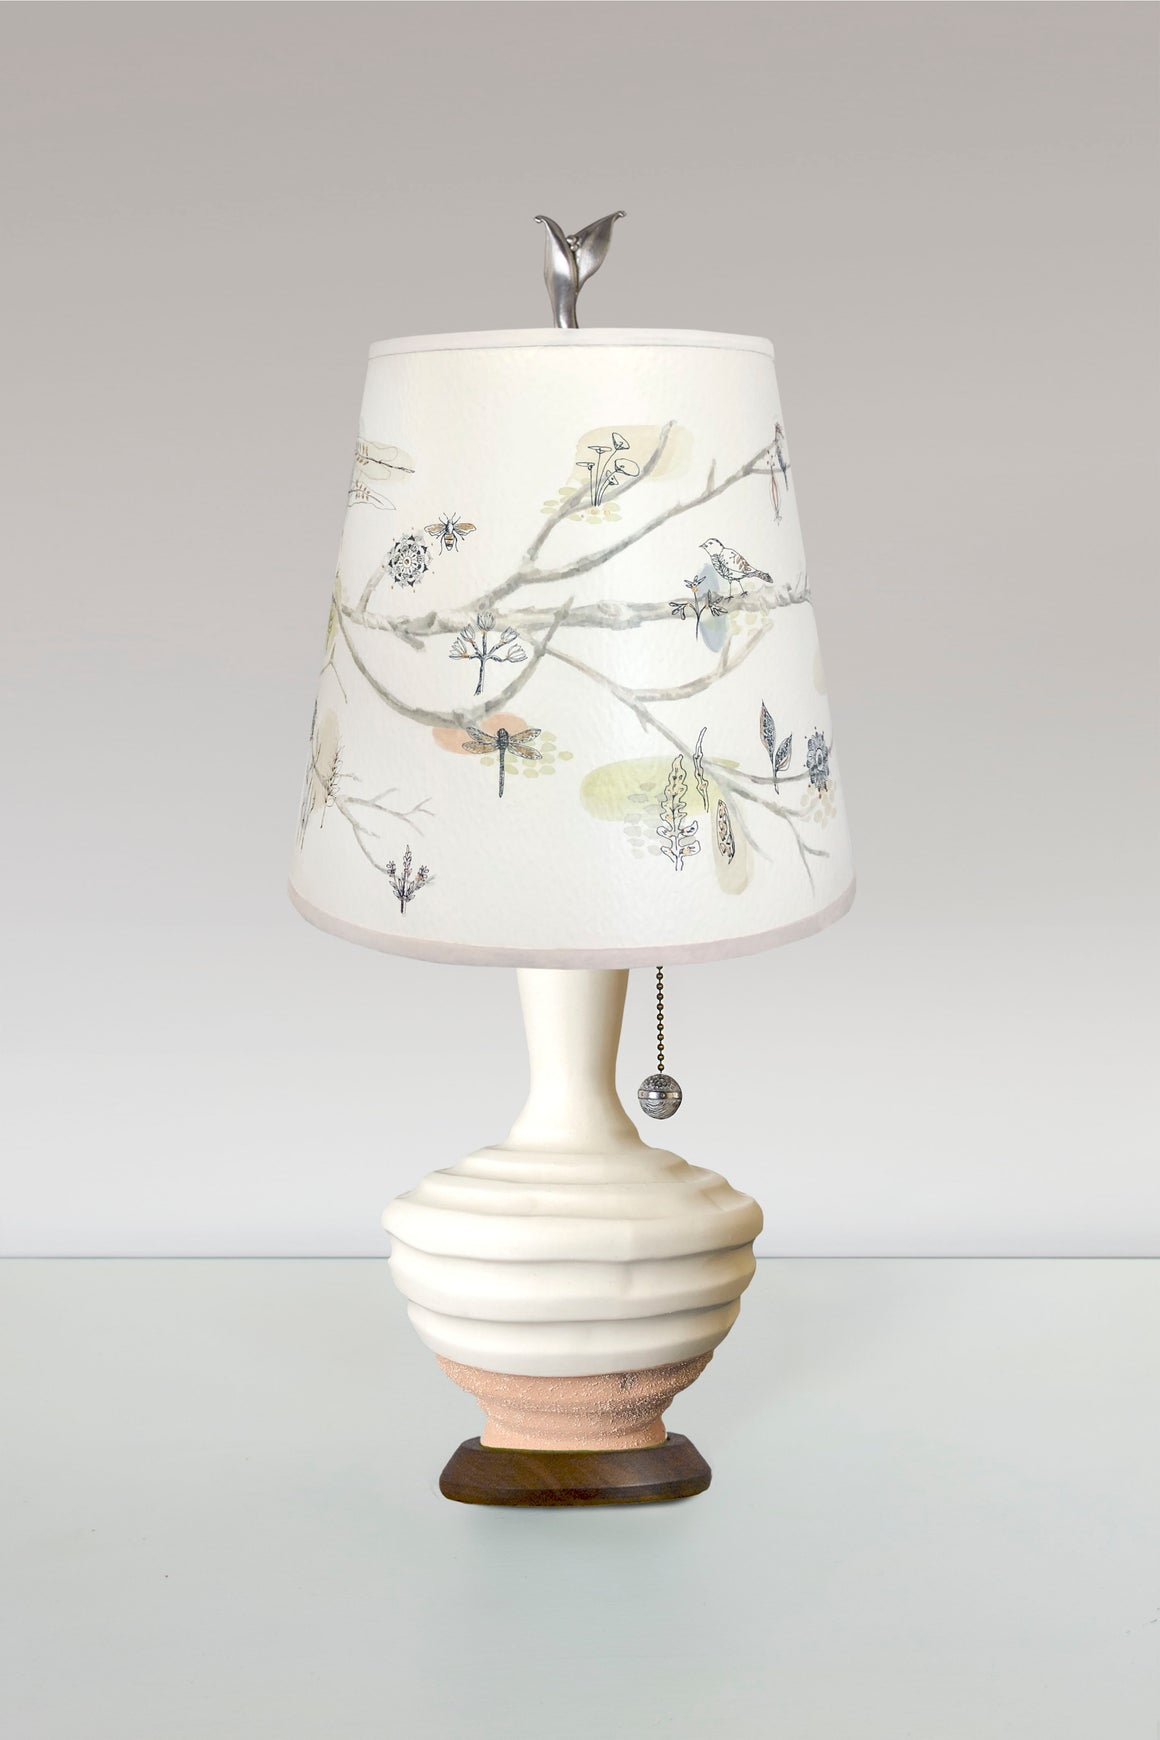 Terracotta and White Ceramic Table Lamp with Small Drum Shade in Artful Branch